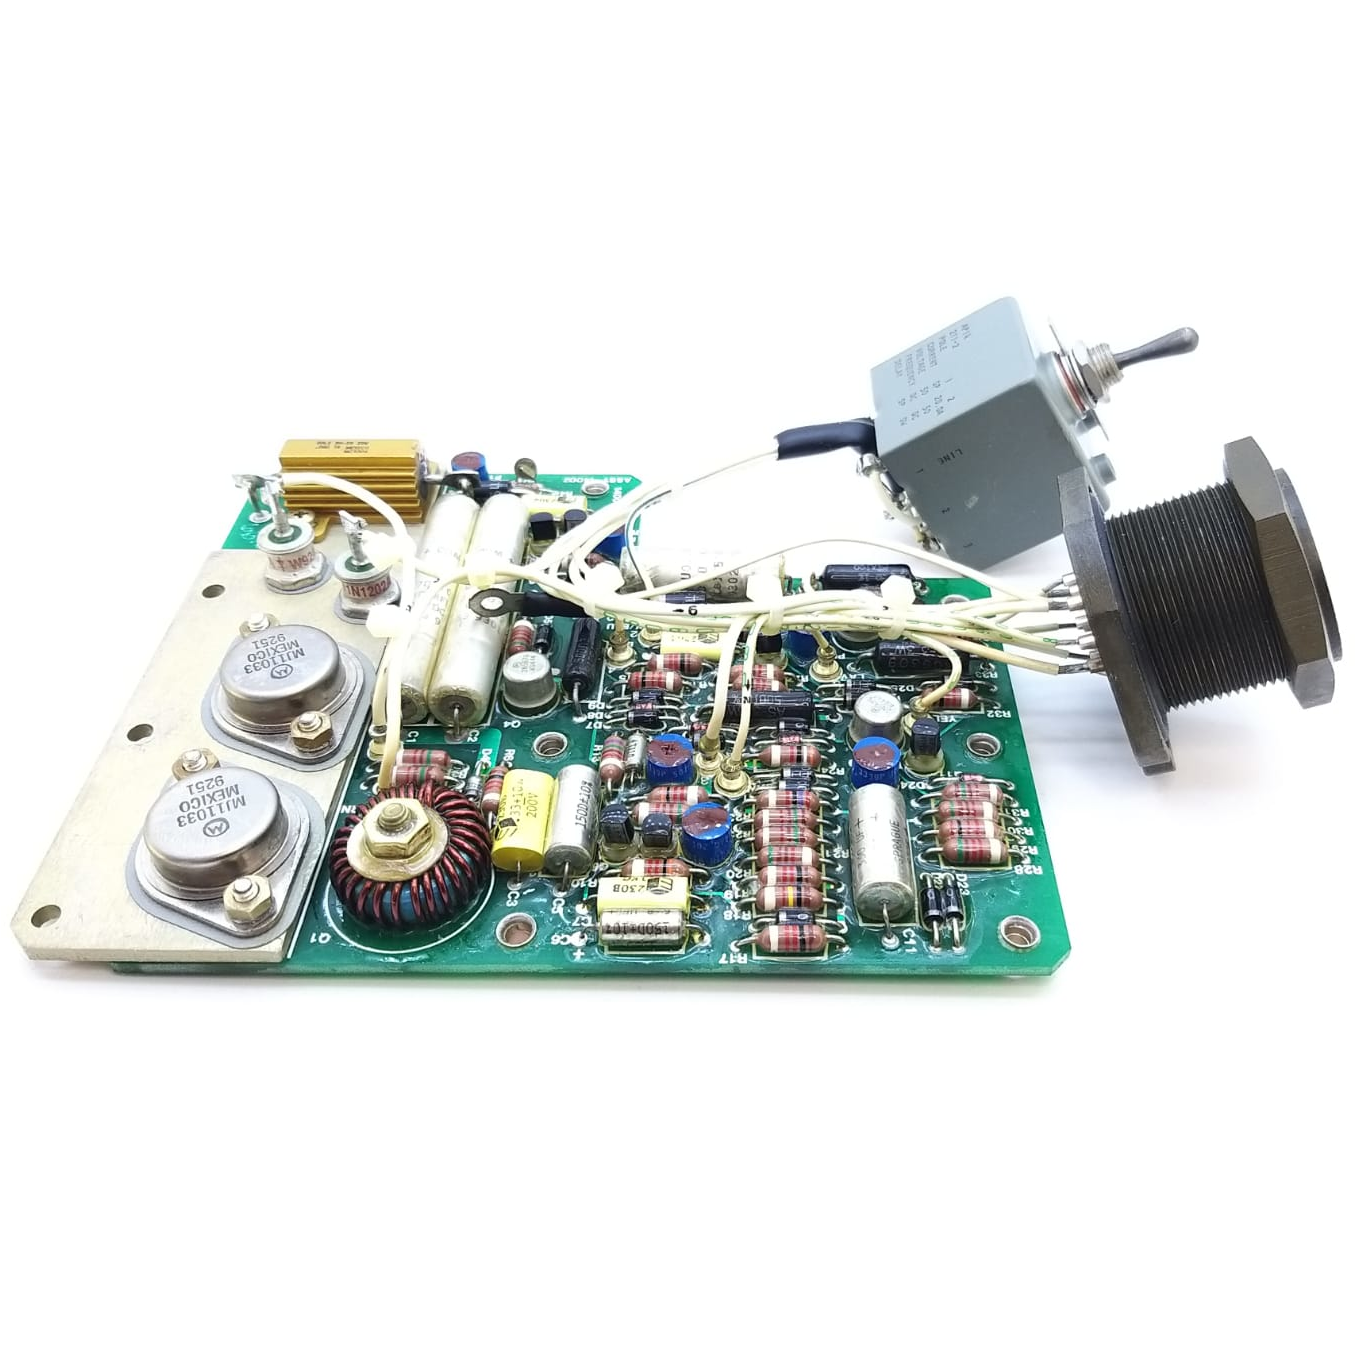 14002 5999-01-258-2062 CIRCUIT CARD ASSEMBLY